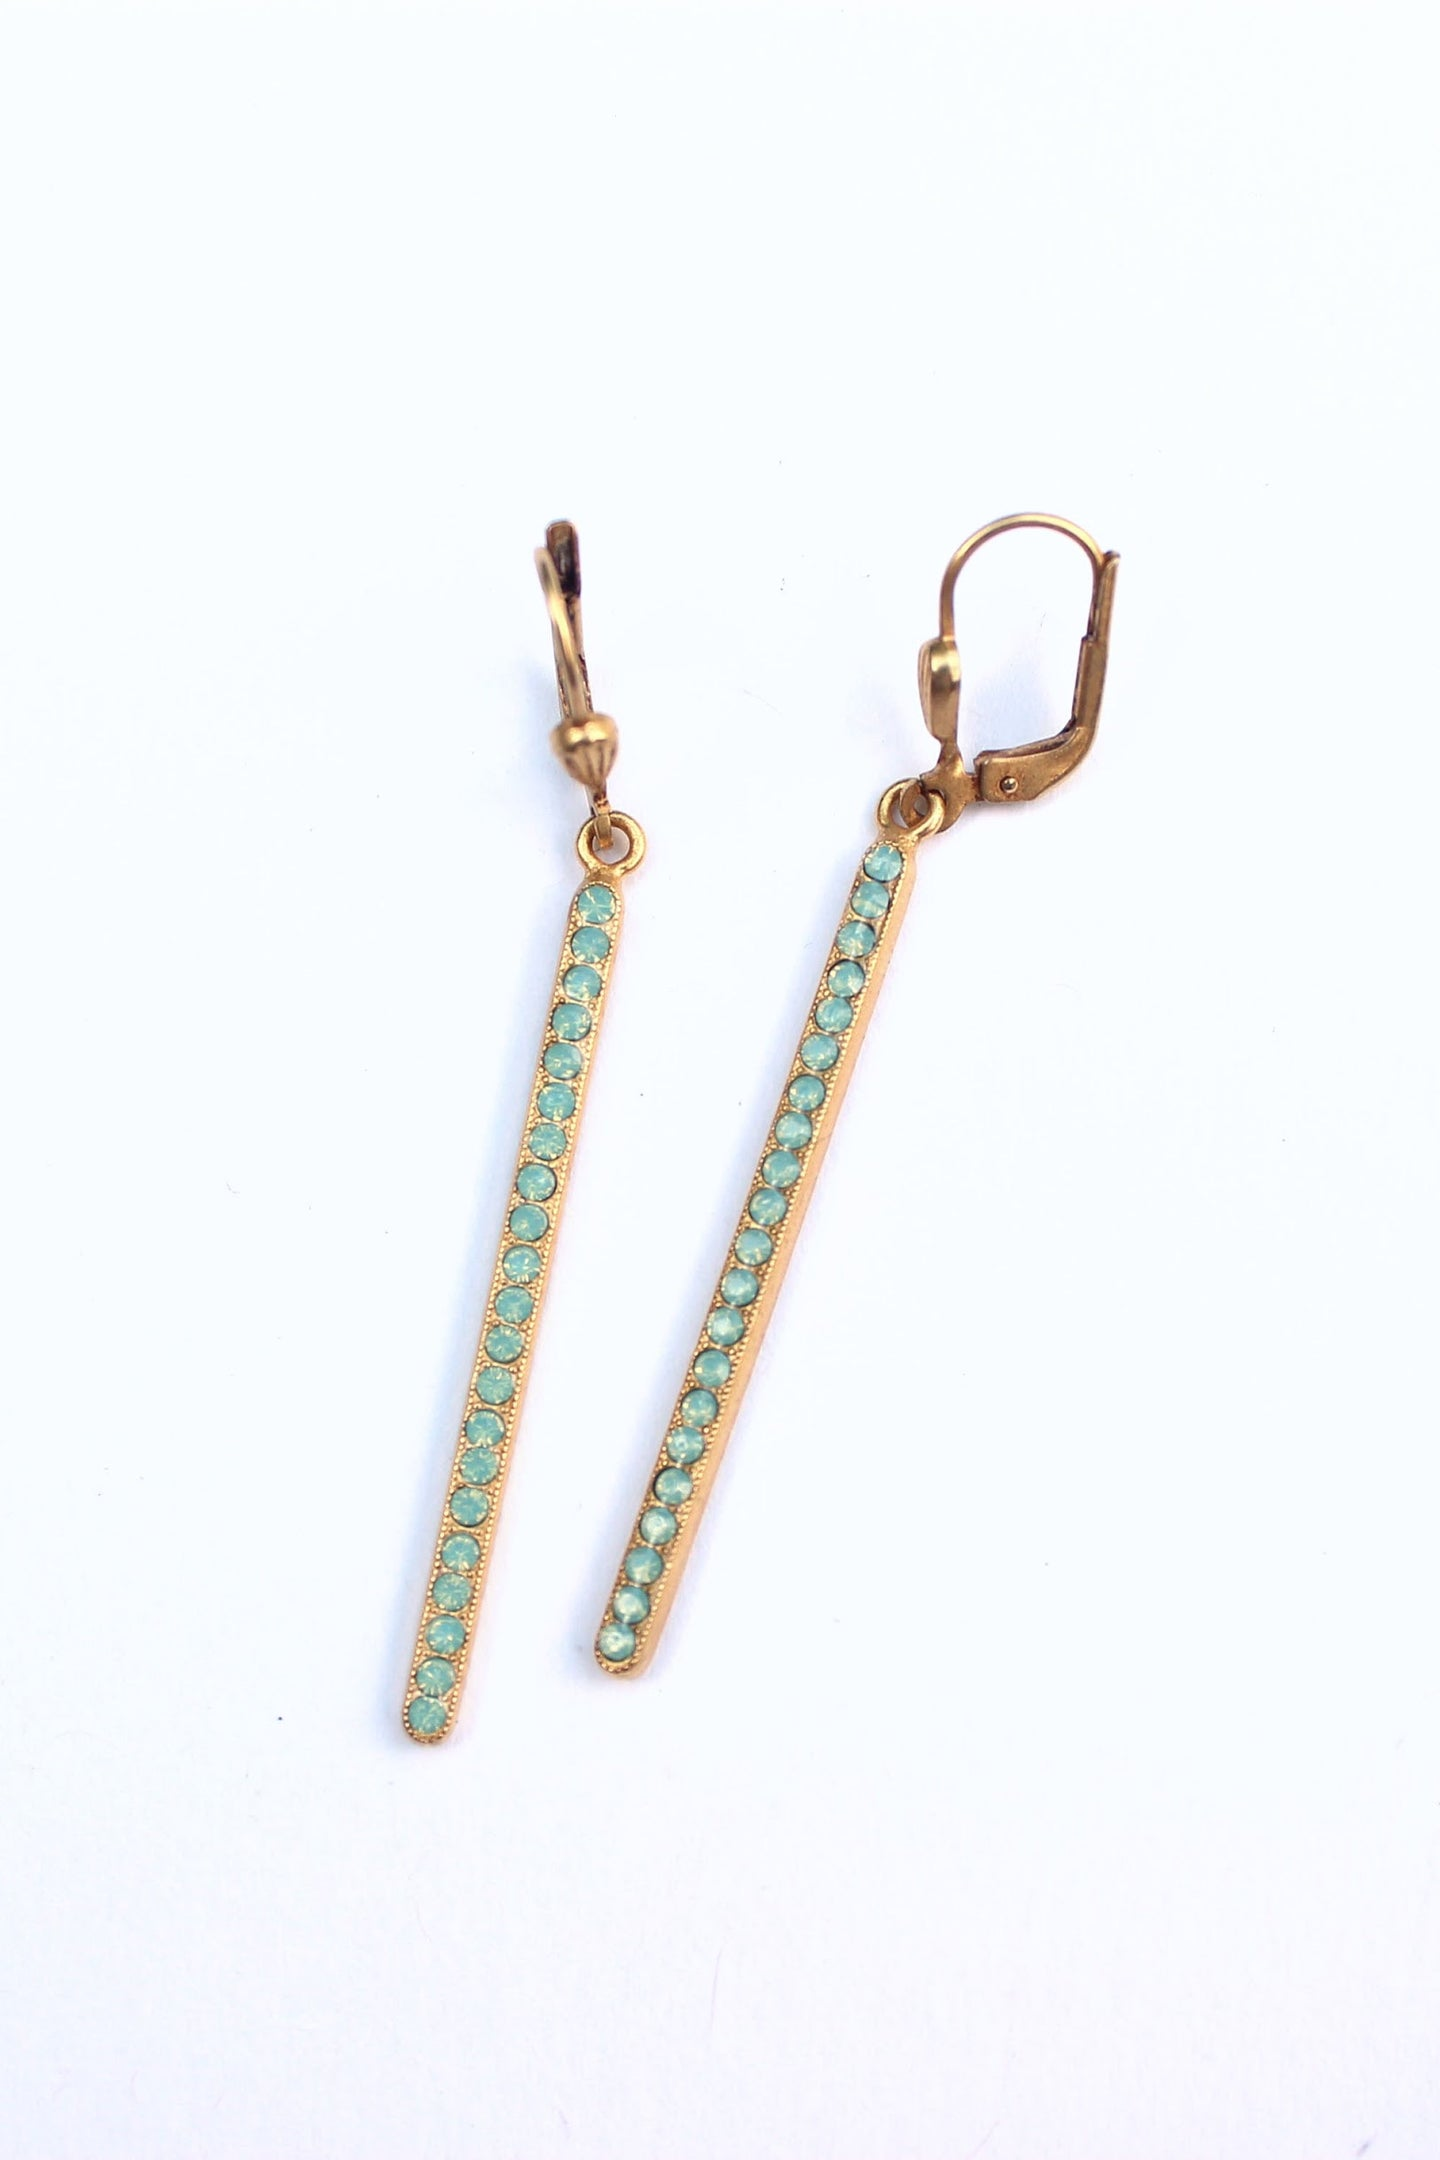 Gold Bar Earring with Light Teal Crystals